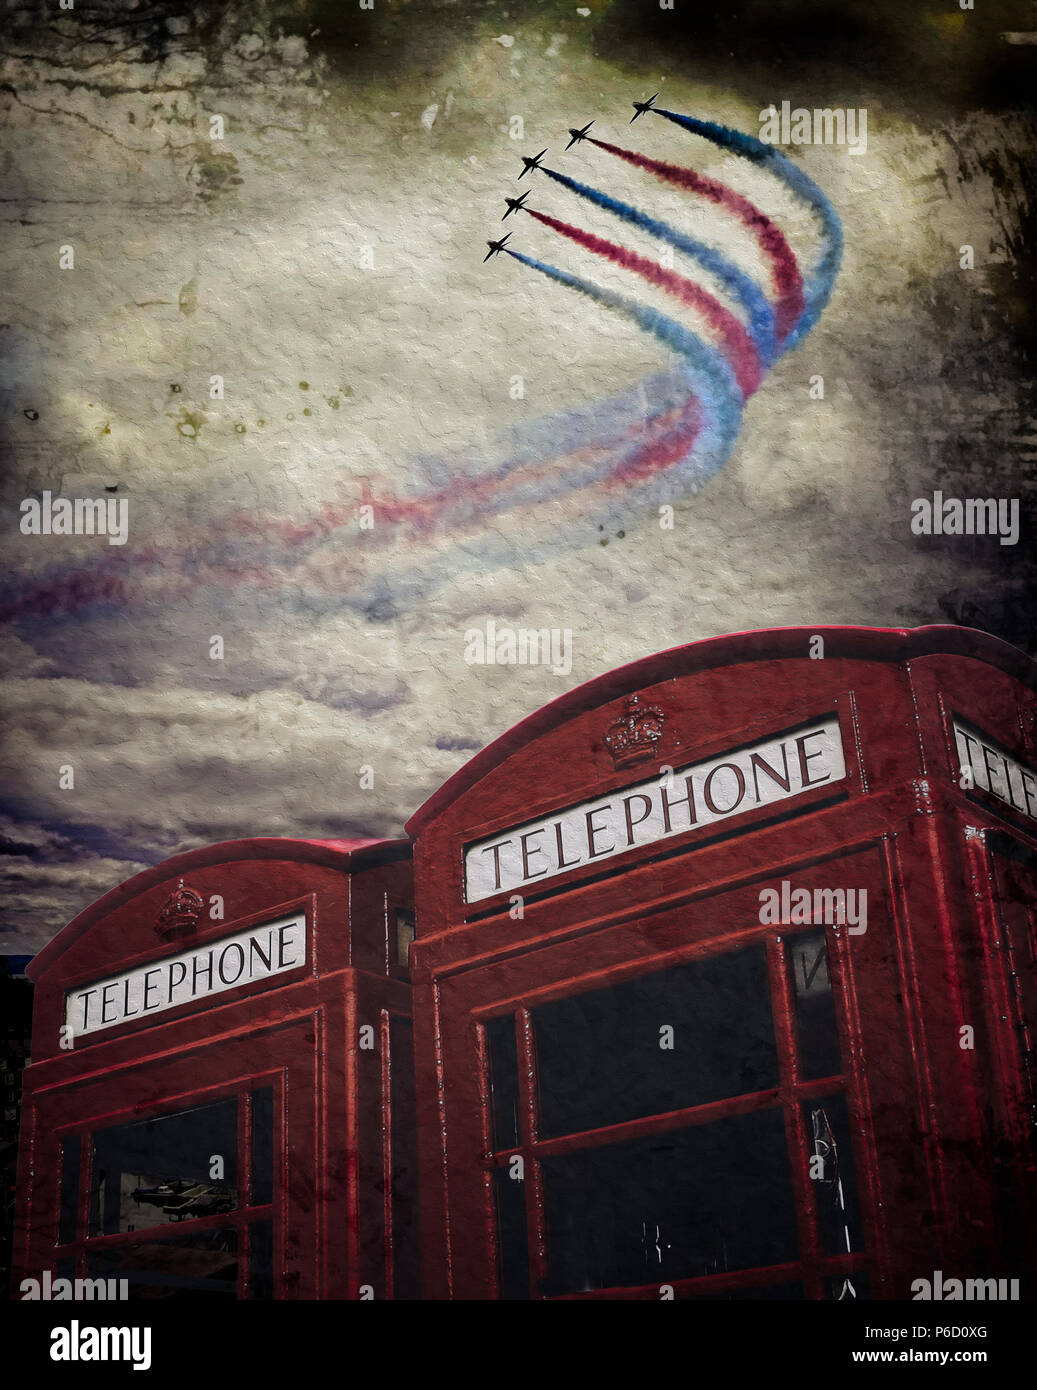 DIGITAL ART: The RAF Red Arrows over British telephone boxes - Stock Image